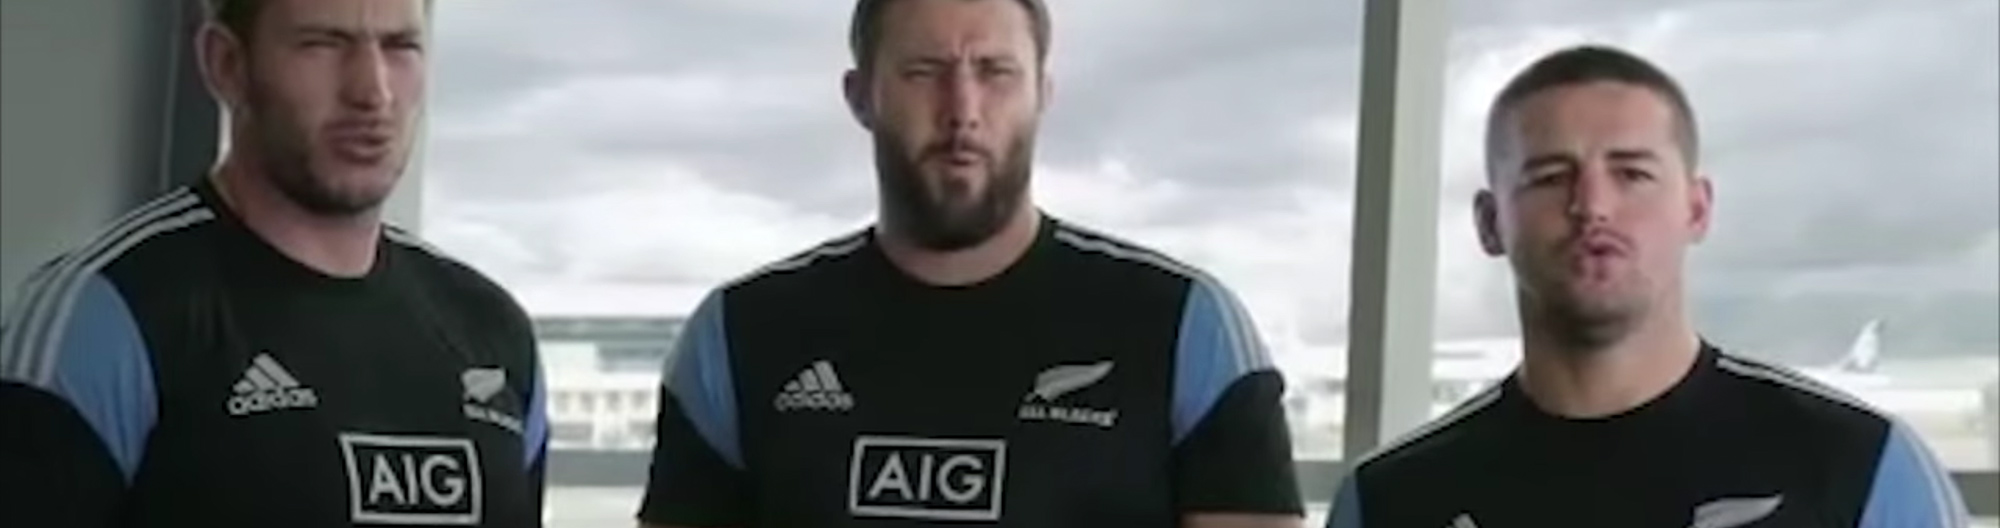 All Blacks Travel Insurance TV Spot